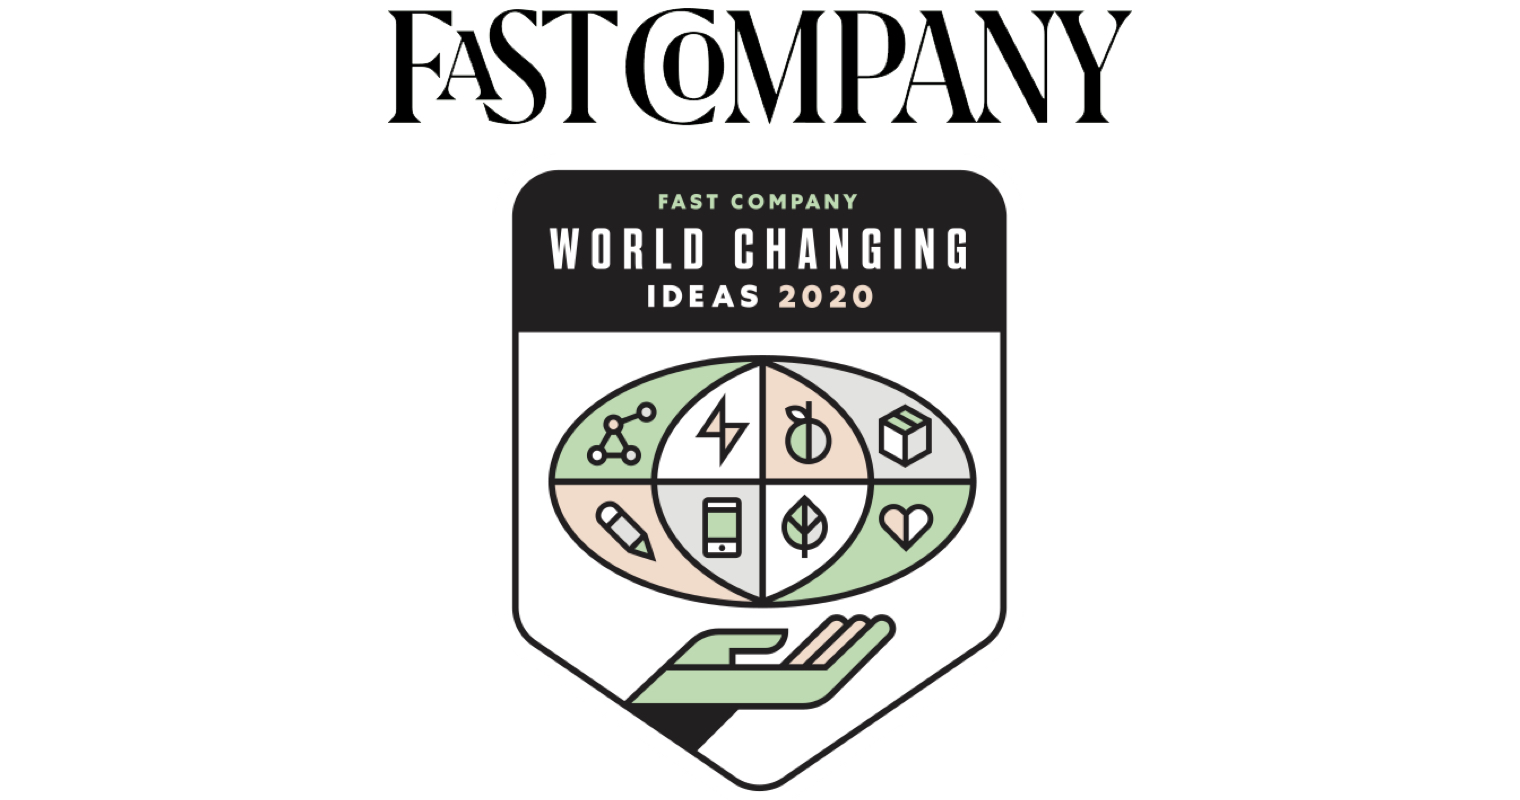 Fast Company: World Changing Ideas 2020